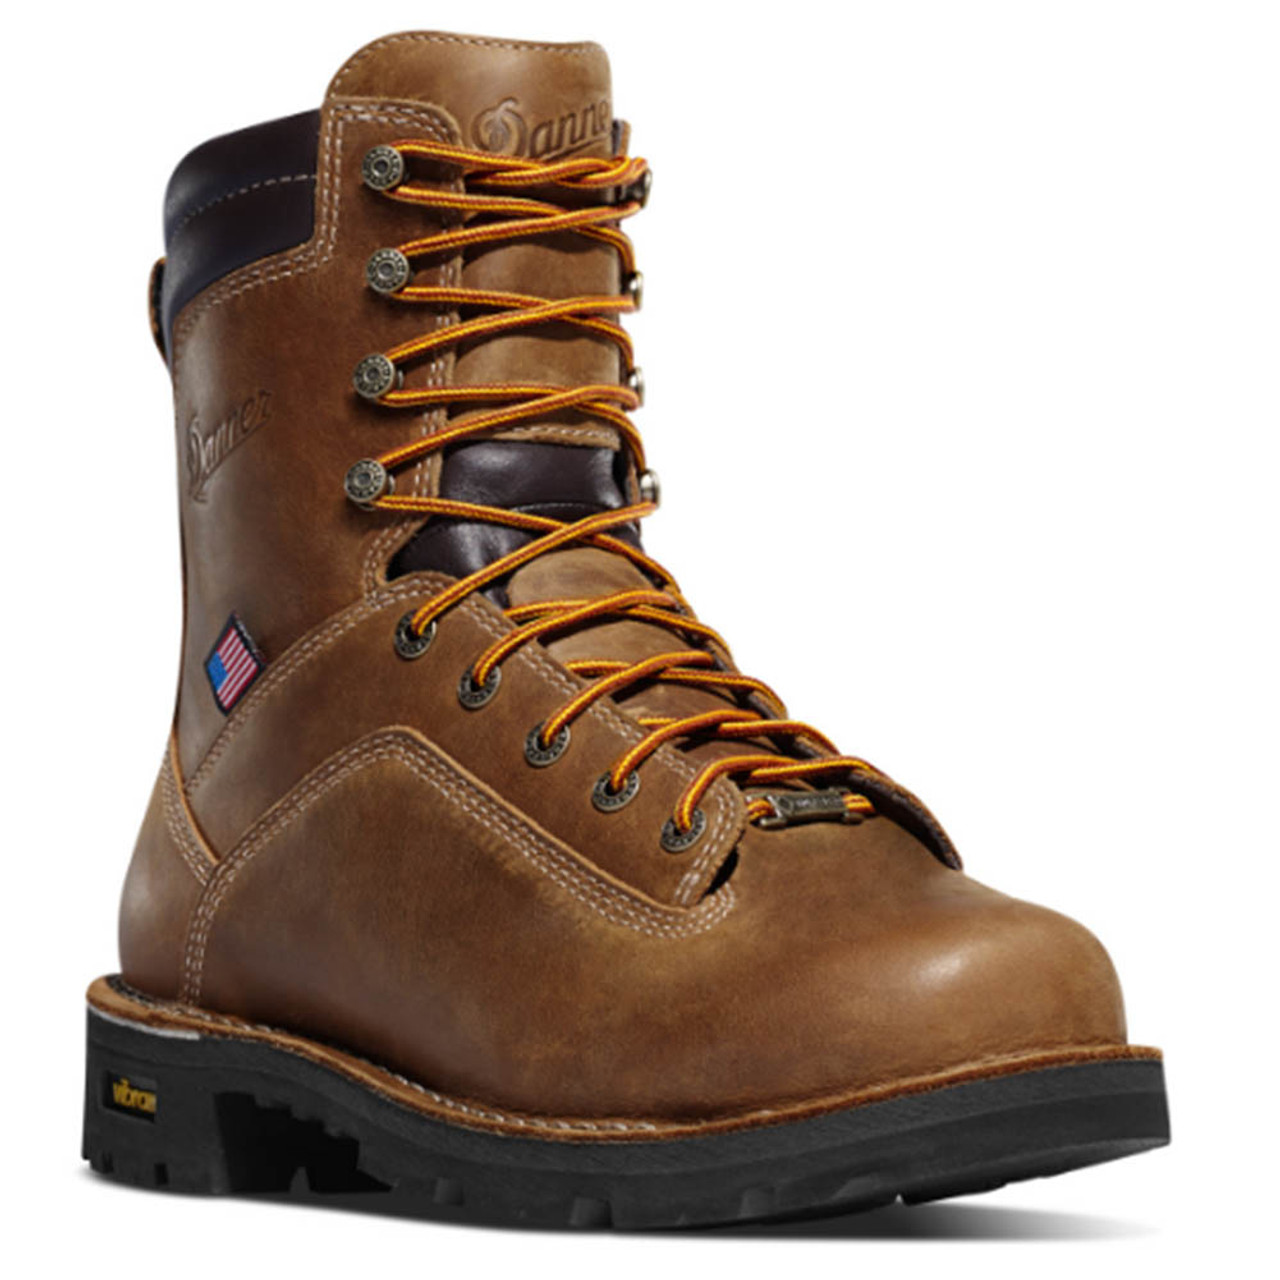 Danner Insulated Work Boots